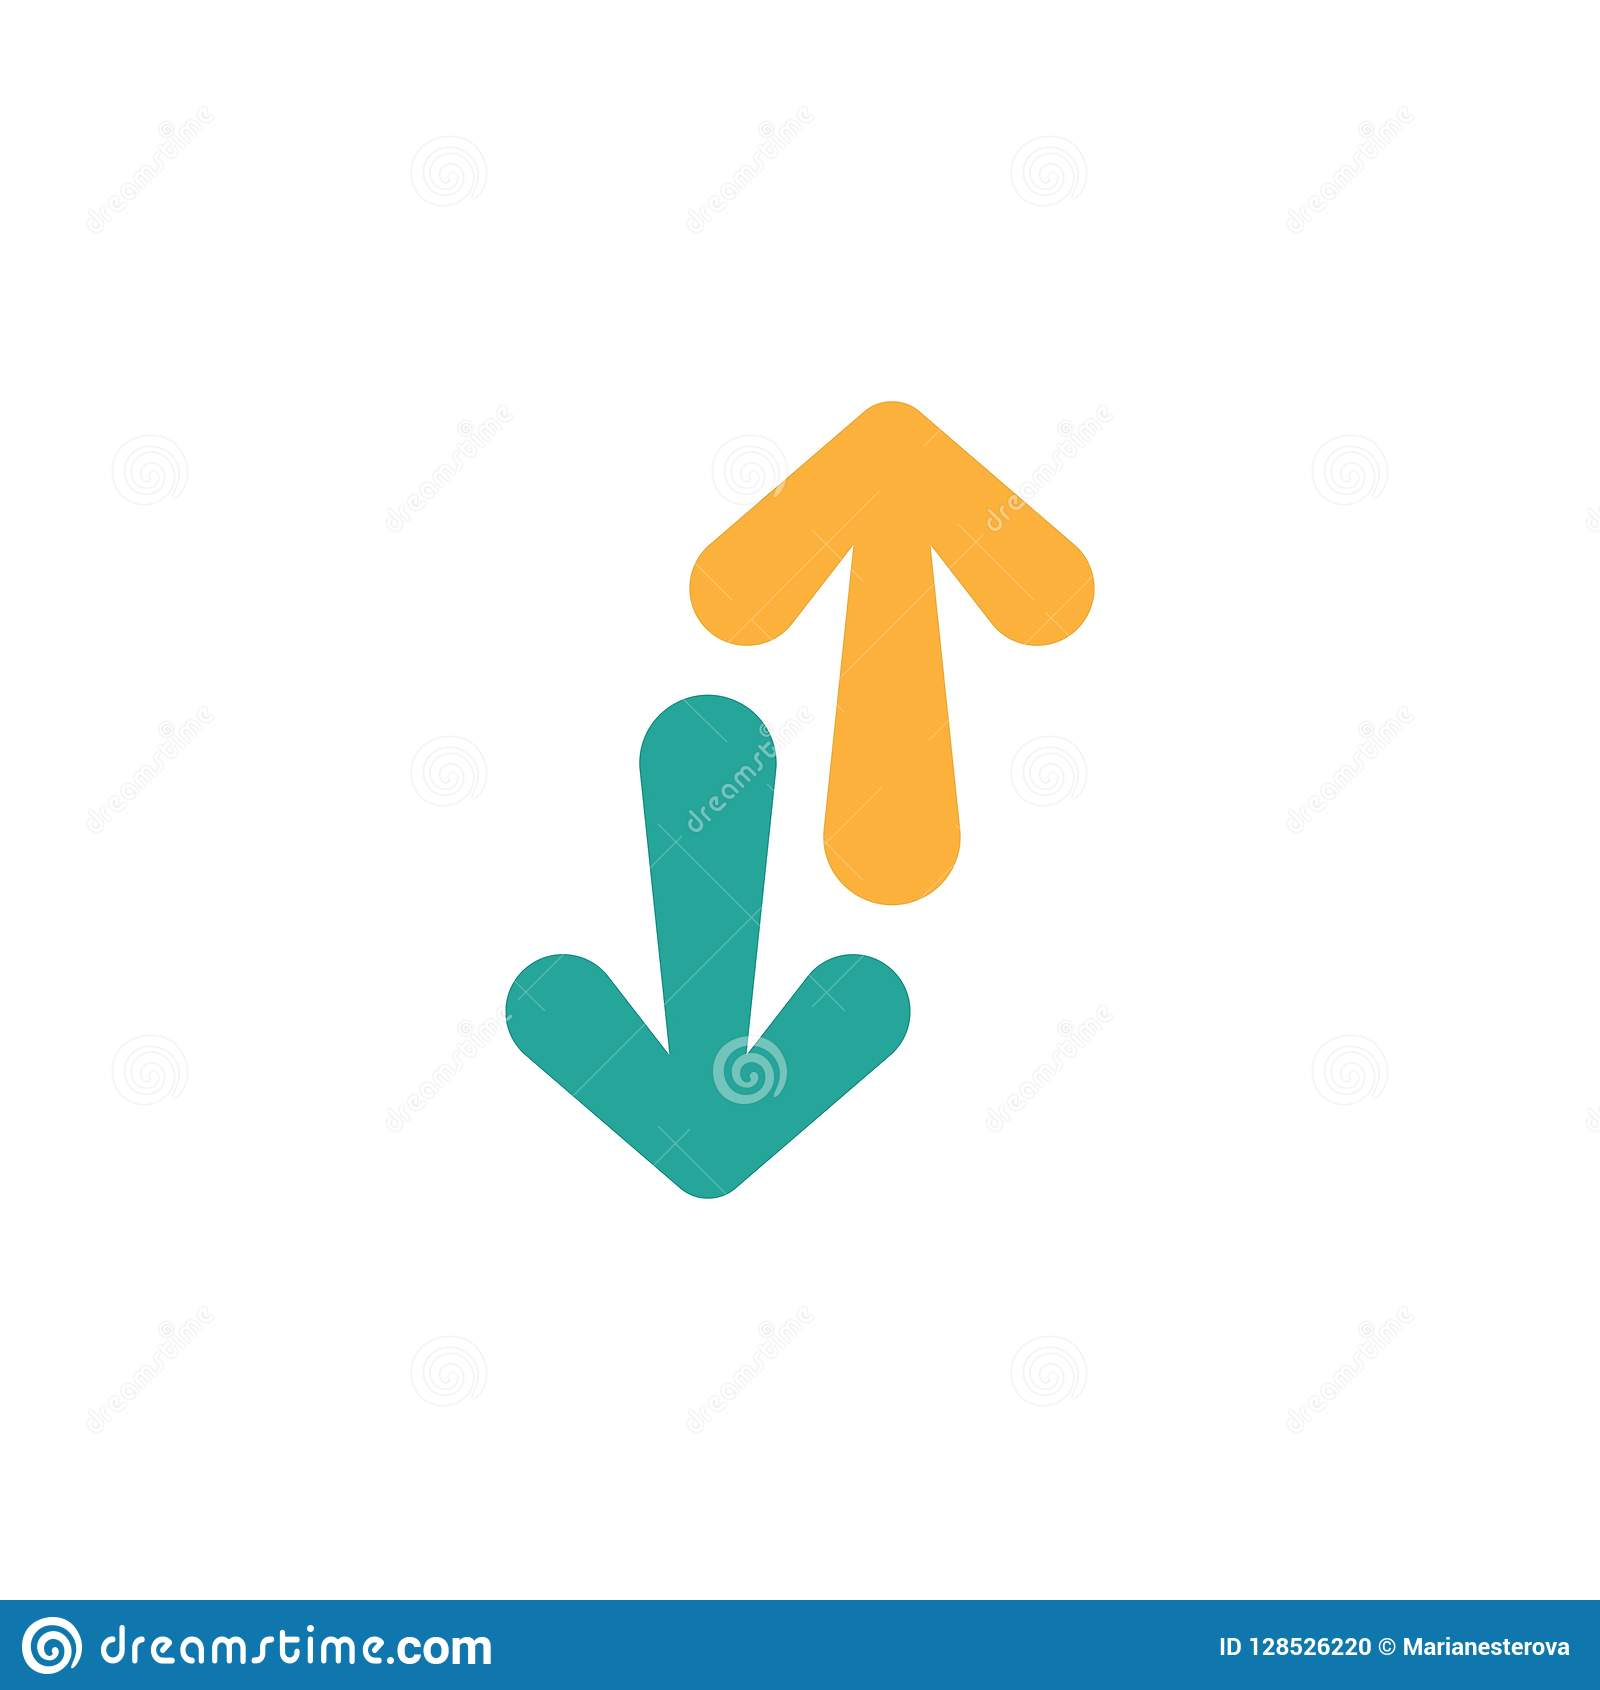 d8351b872 Flip Vertical vector icon. two orange and blue opposite cartoon arrows  isolated on white. Flat exchange icon.